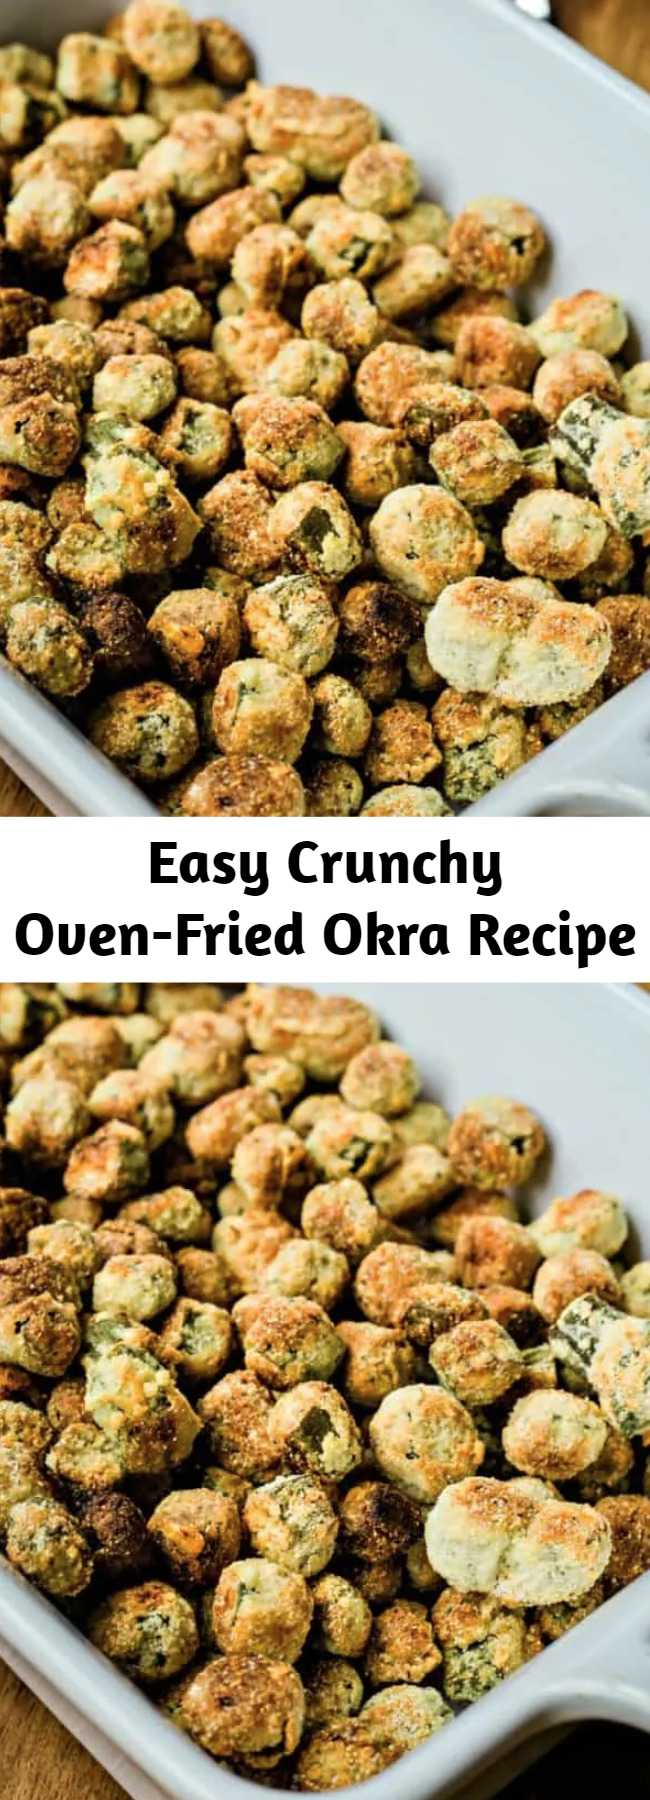 """Easy Crunchy Oven-Fried Okra Recipe - This recipe is a bit healthier and easier to prepare. Make this delicious and Crunchy Oven-Fried Okra just one time and you may never go back to cooking fried okra on the stove! Plus, this """"fried"""" okra recipe uses a fraction of the oil that you would need when pan frying which is an added health benefit!"""